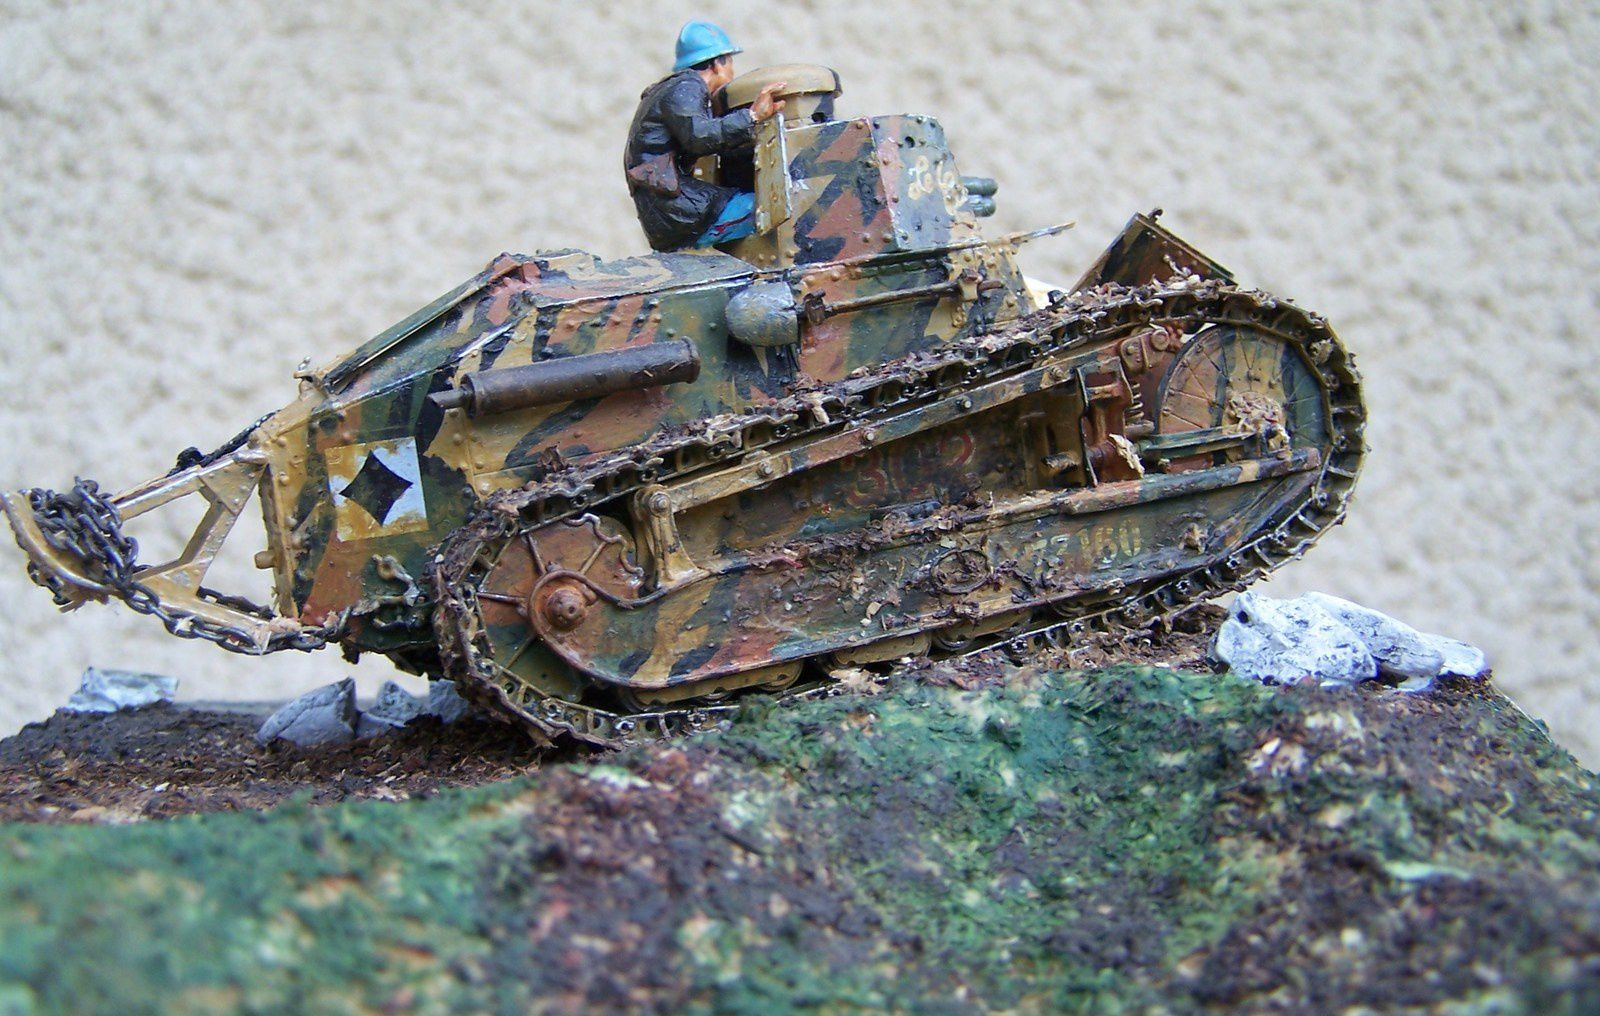 diorama char renault 1917 tank ft 17 ww1 maquettemilitaire. Black Bedroom Furniture Sets. Home Design Ideas